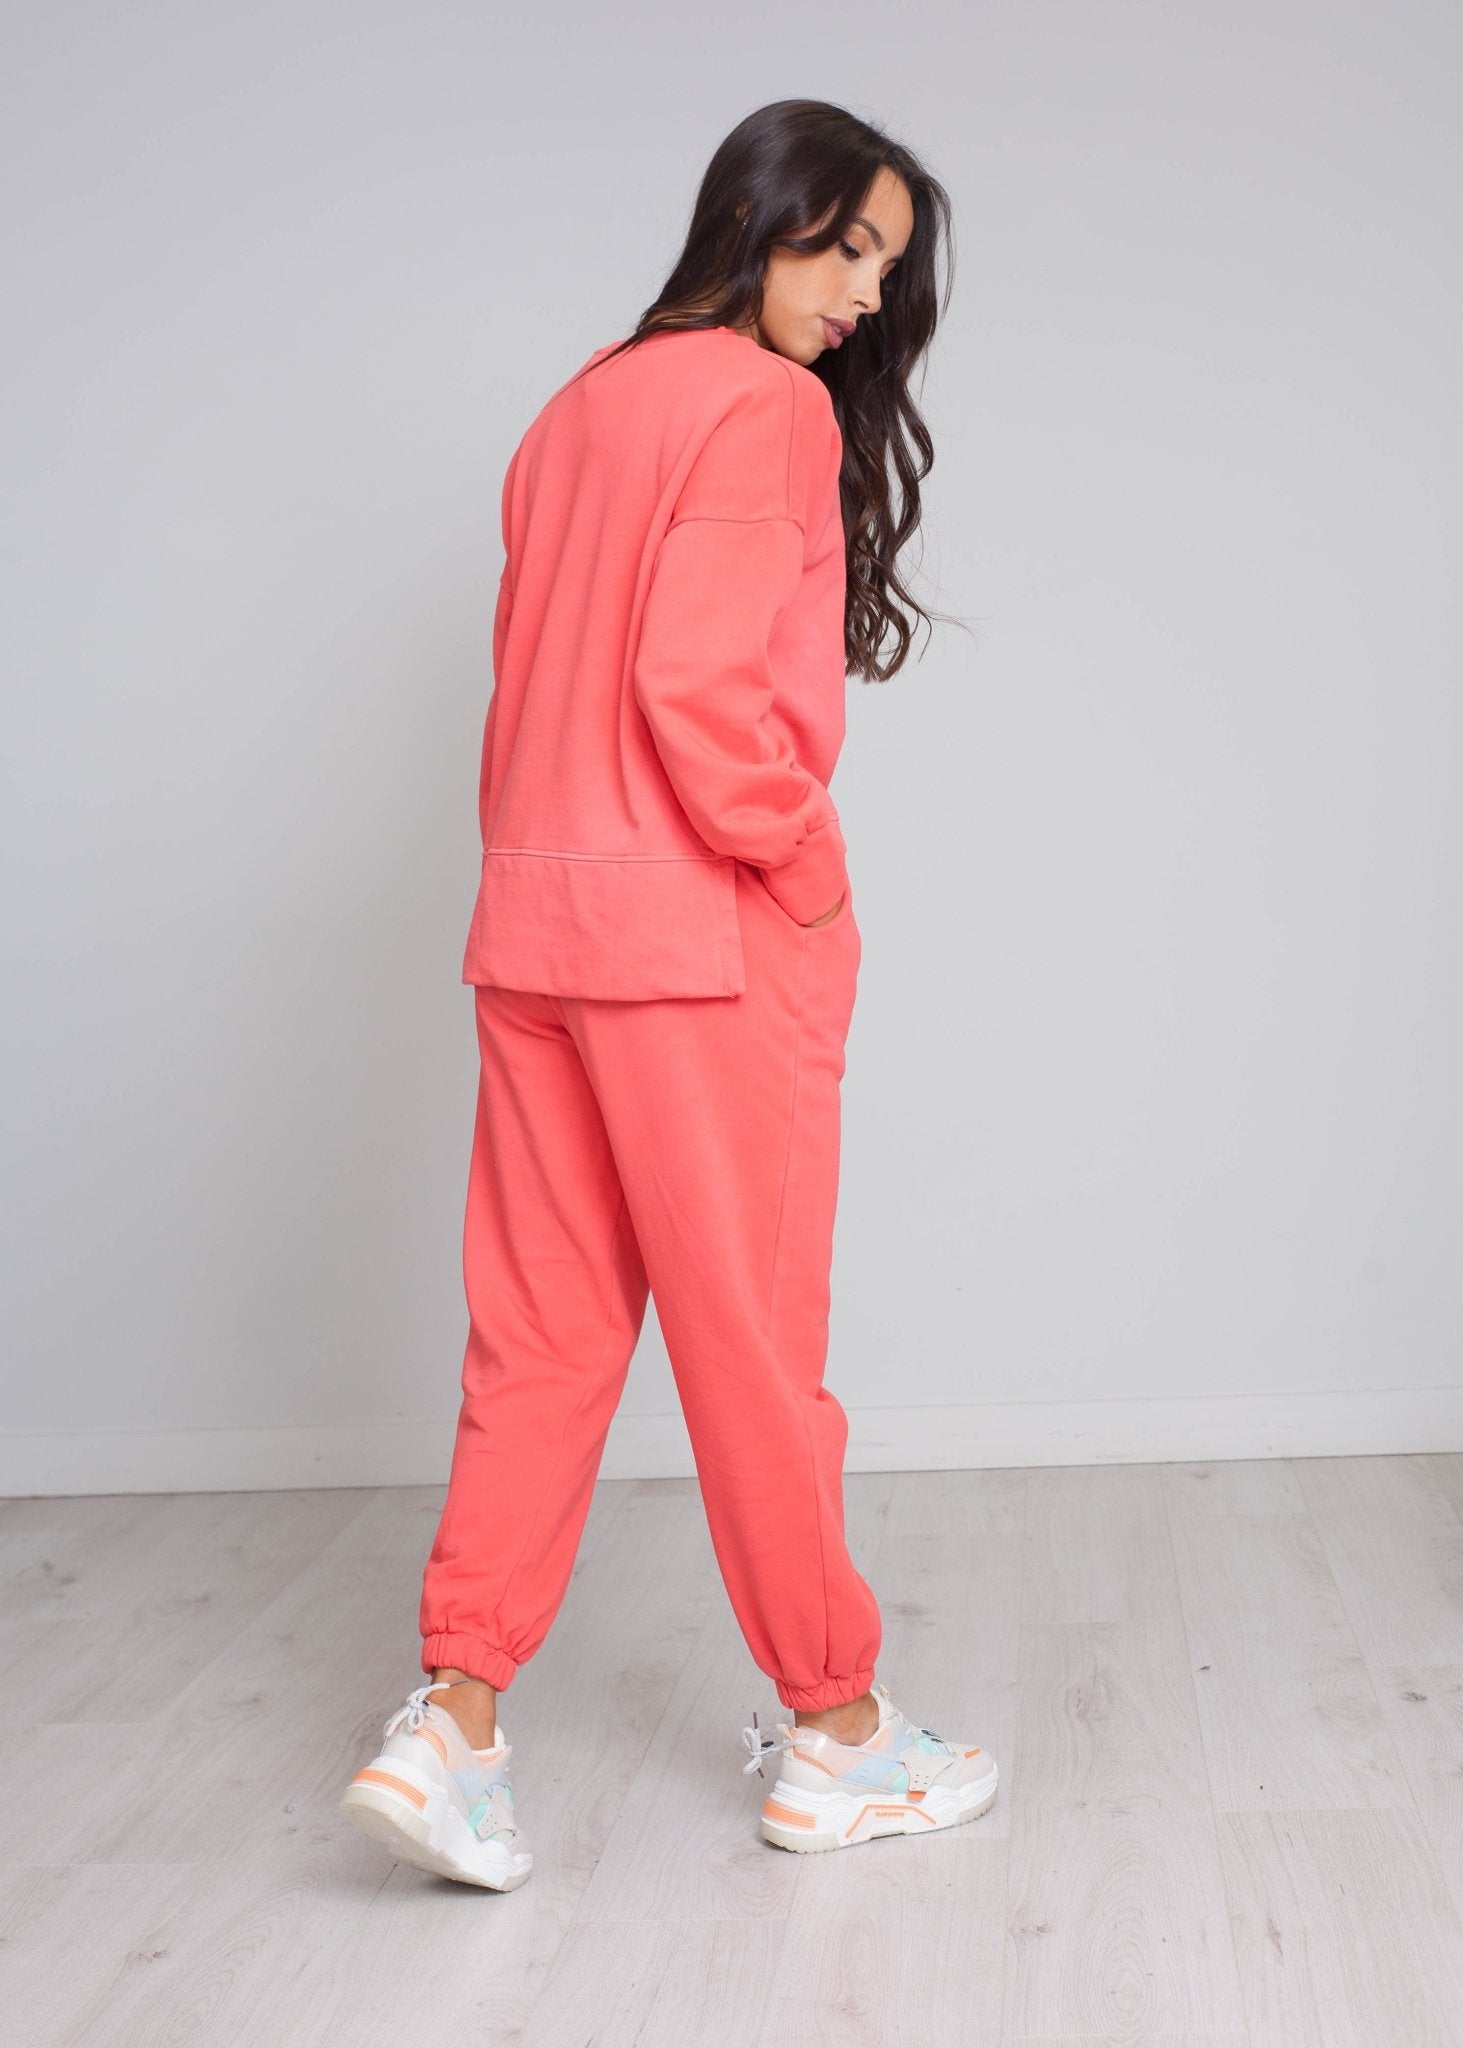 Laura Sweatshirt In Coral - The Walk in Wardrobe